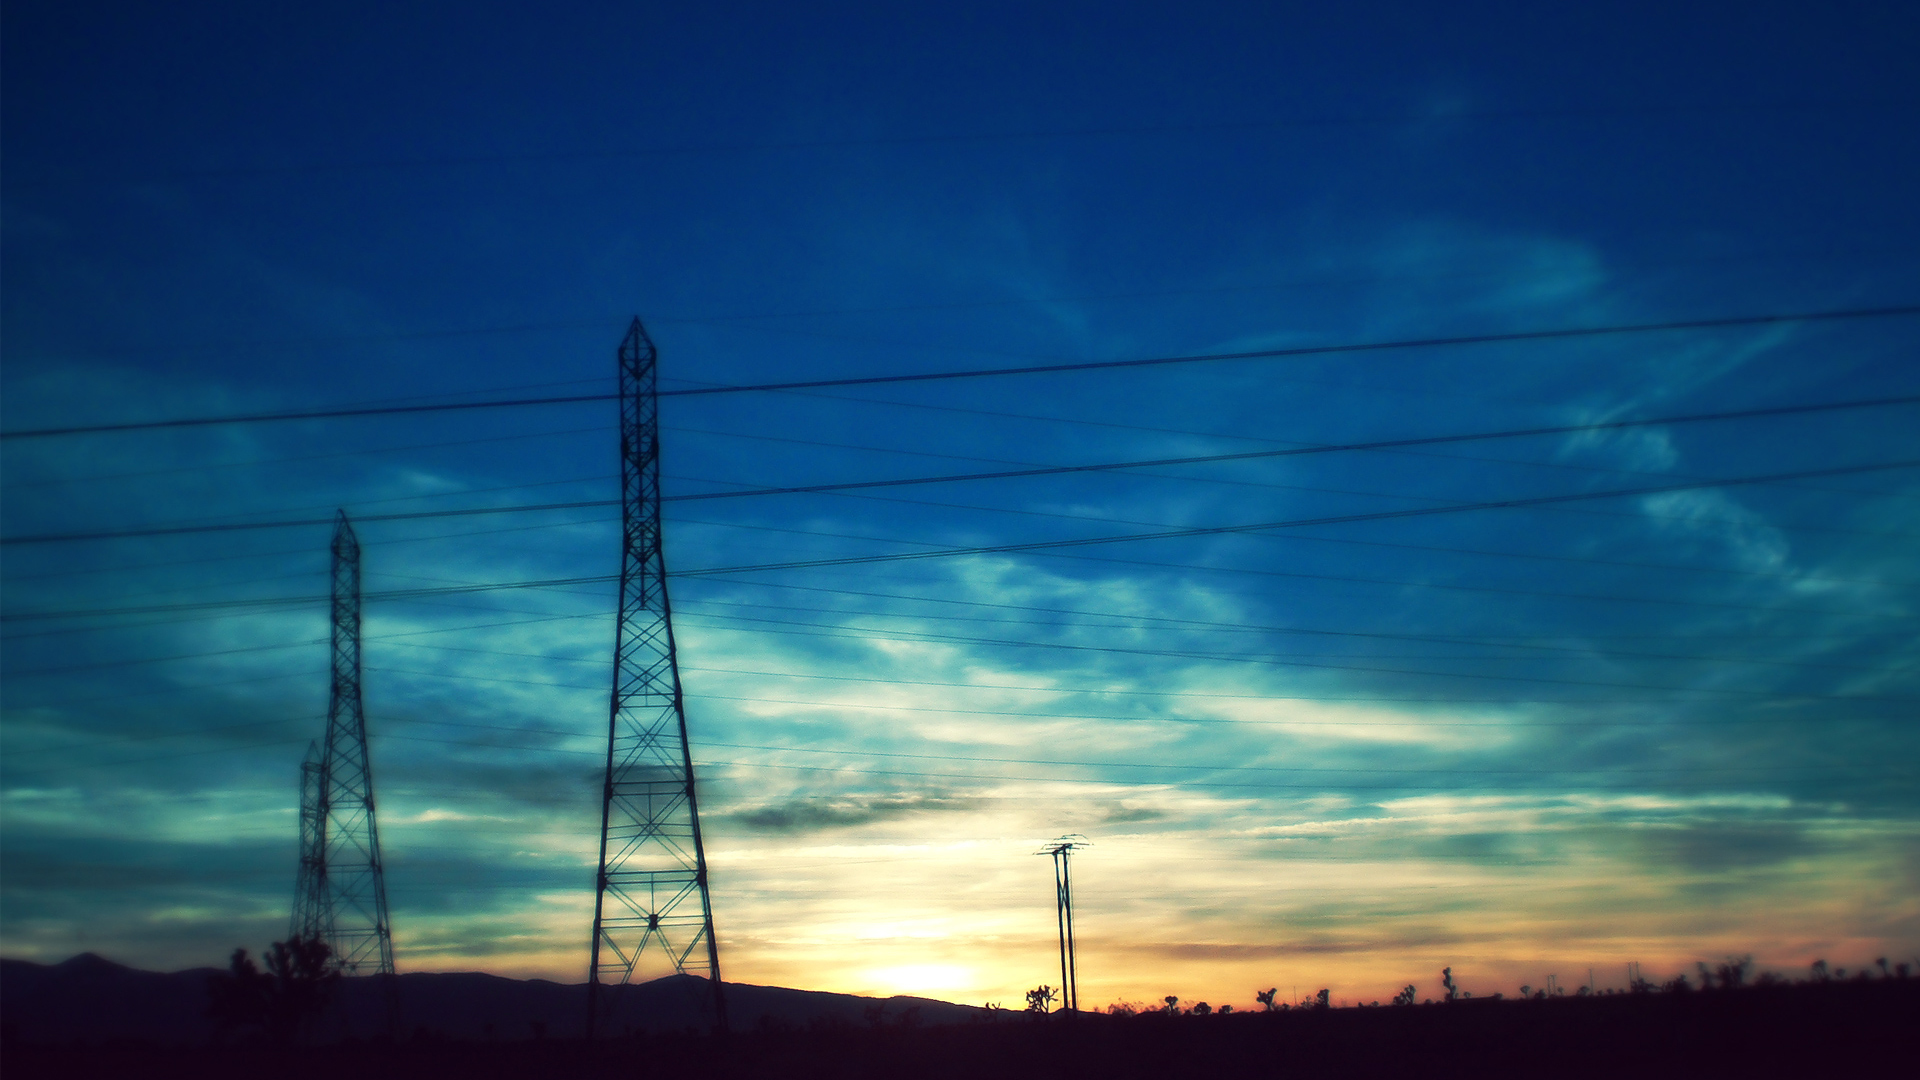 sunset power lines countryside